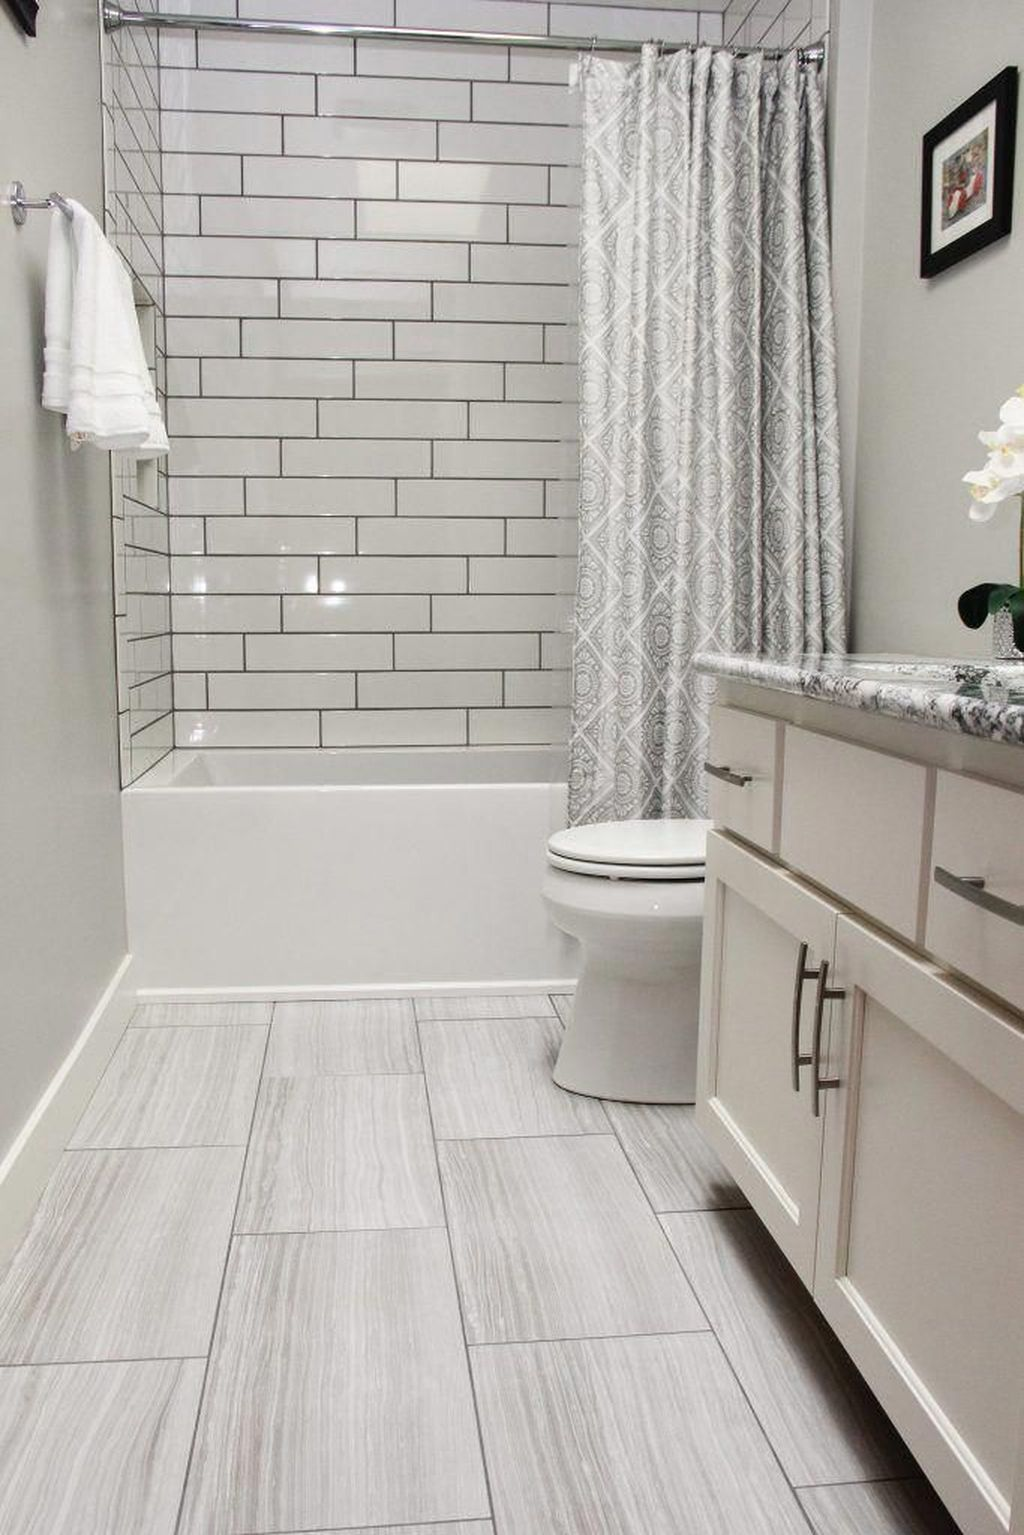 Amazing White Tile Bathroom Design Ideas Looks Elegant 03